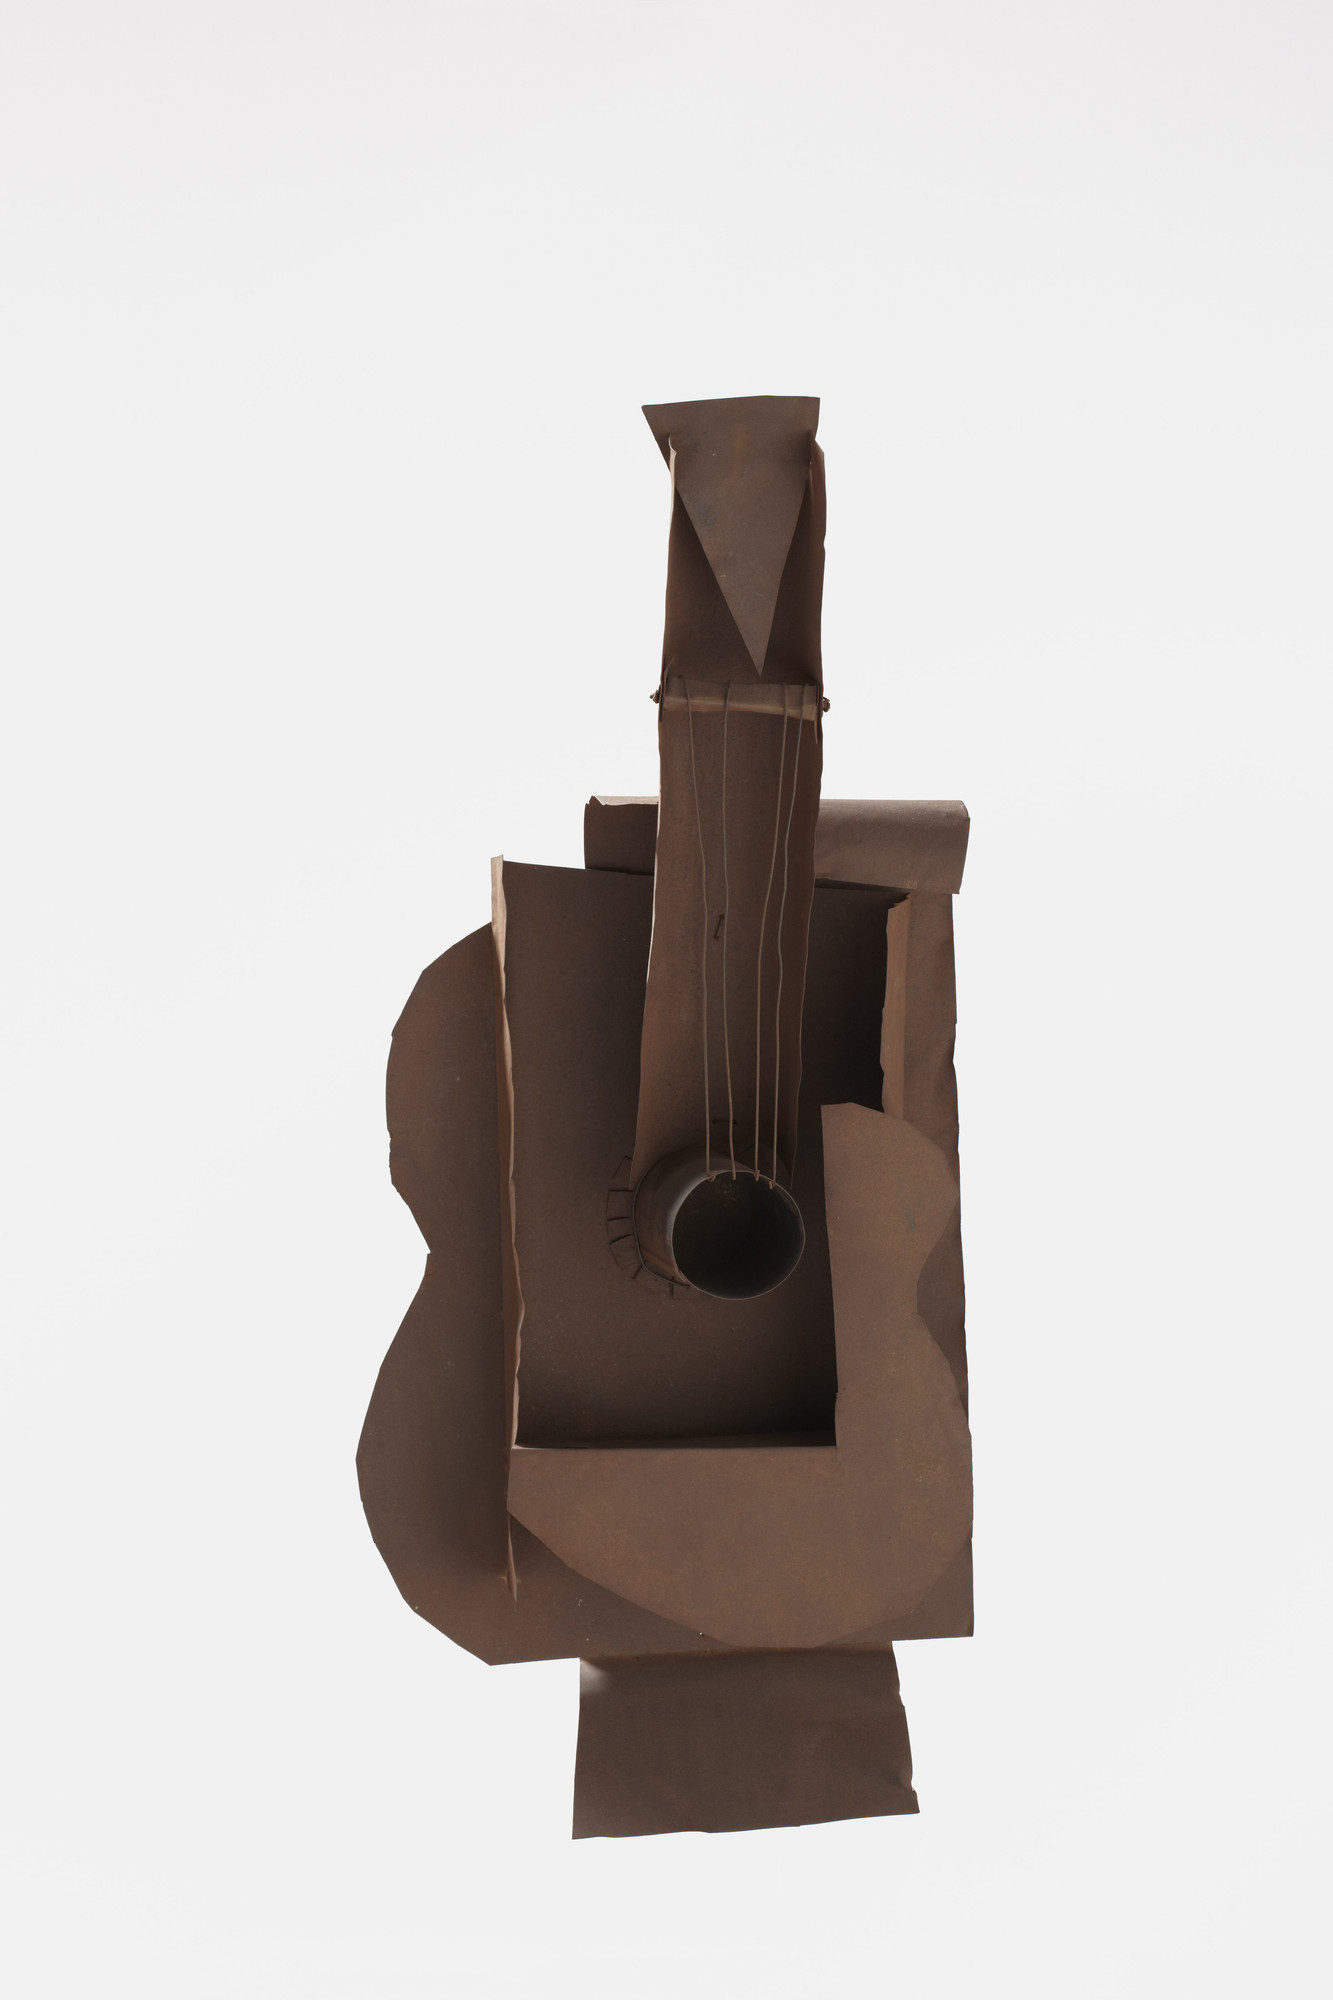 Pablo Picasso. Guitar. Paris, January–February 1914. Ferrous sheet metal and wire, 30 1/2 × 13 3/4 × 7 5/8″ (77.5 × 35 × 19.3 cm). Gift of the artist. © 2016 Estate of Pablo Picasso / Artists Rights Society (ARS), New York. Photo: Jonathan Muzikar